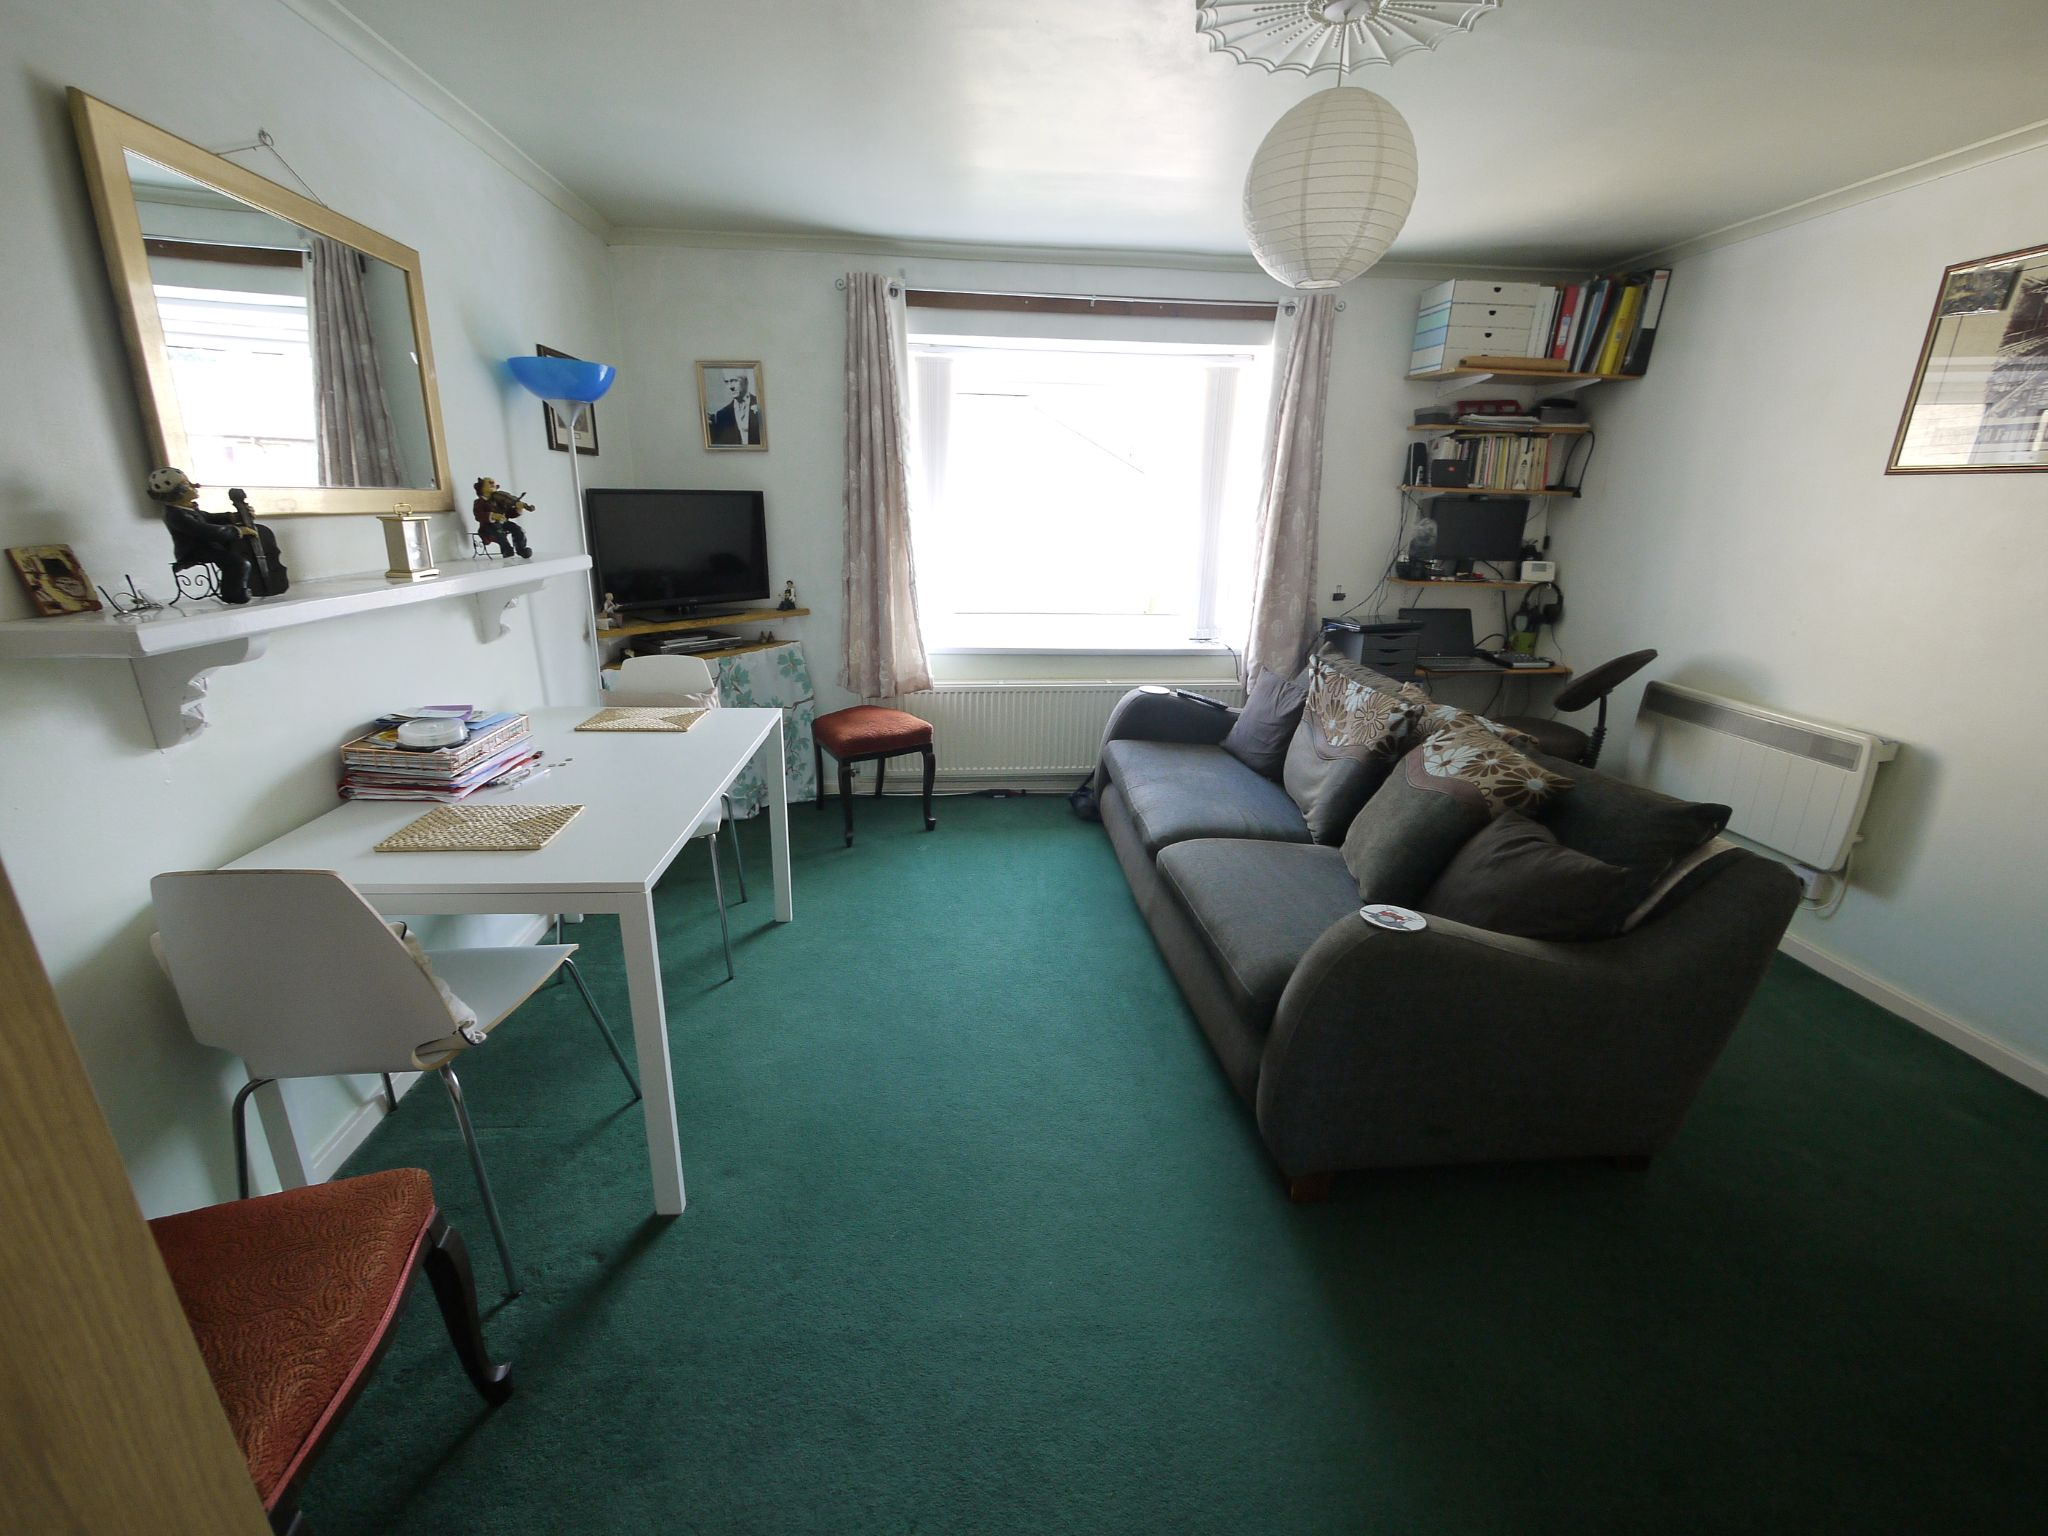 1 bedroom flat flat/apartment SSTC in Brighouse - Lounge.